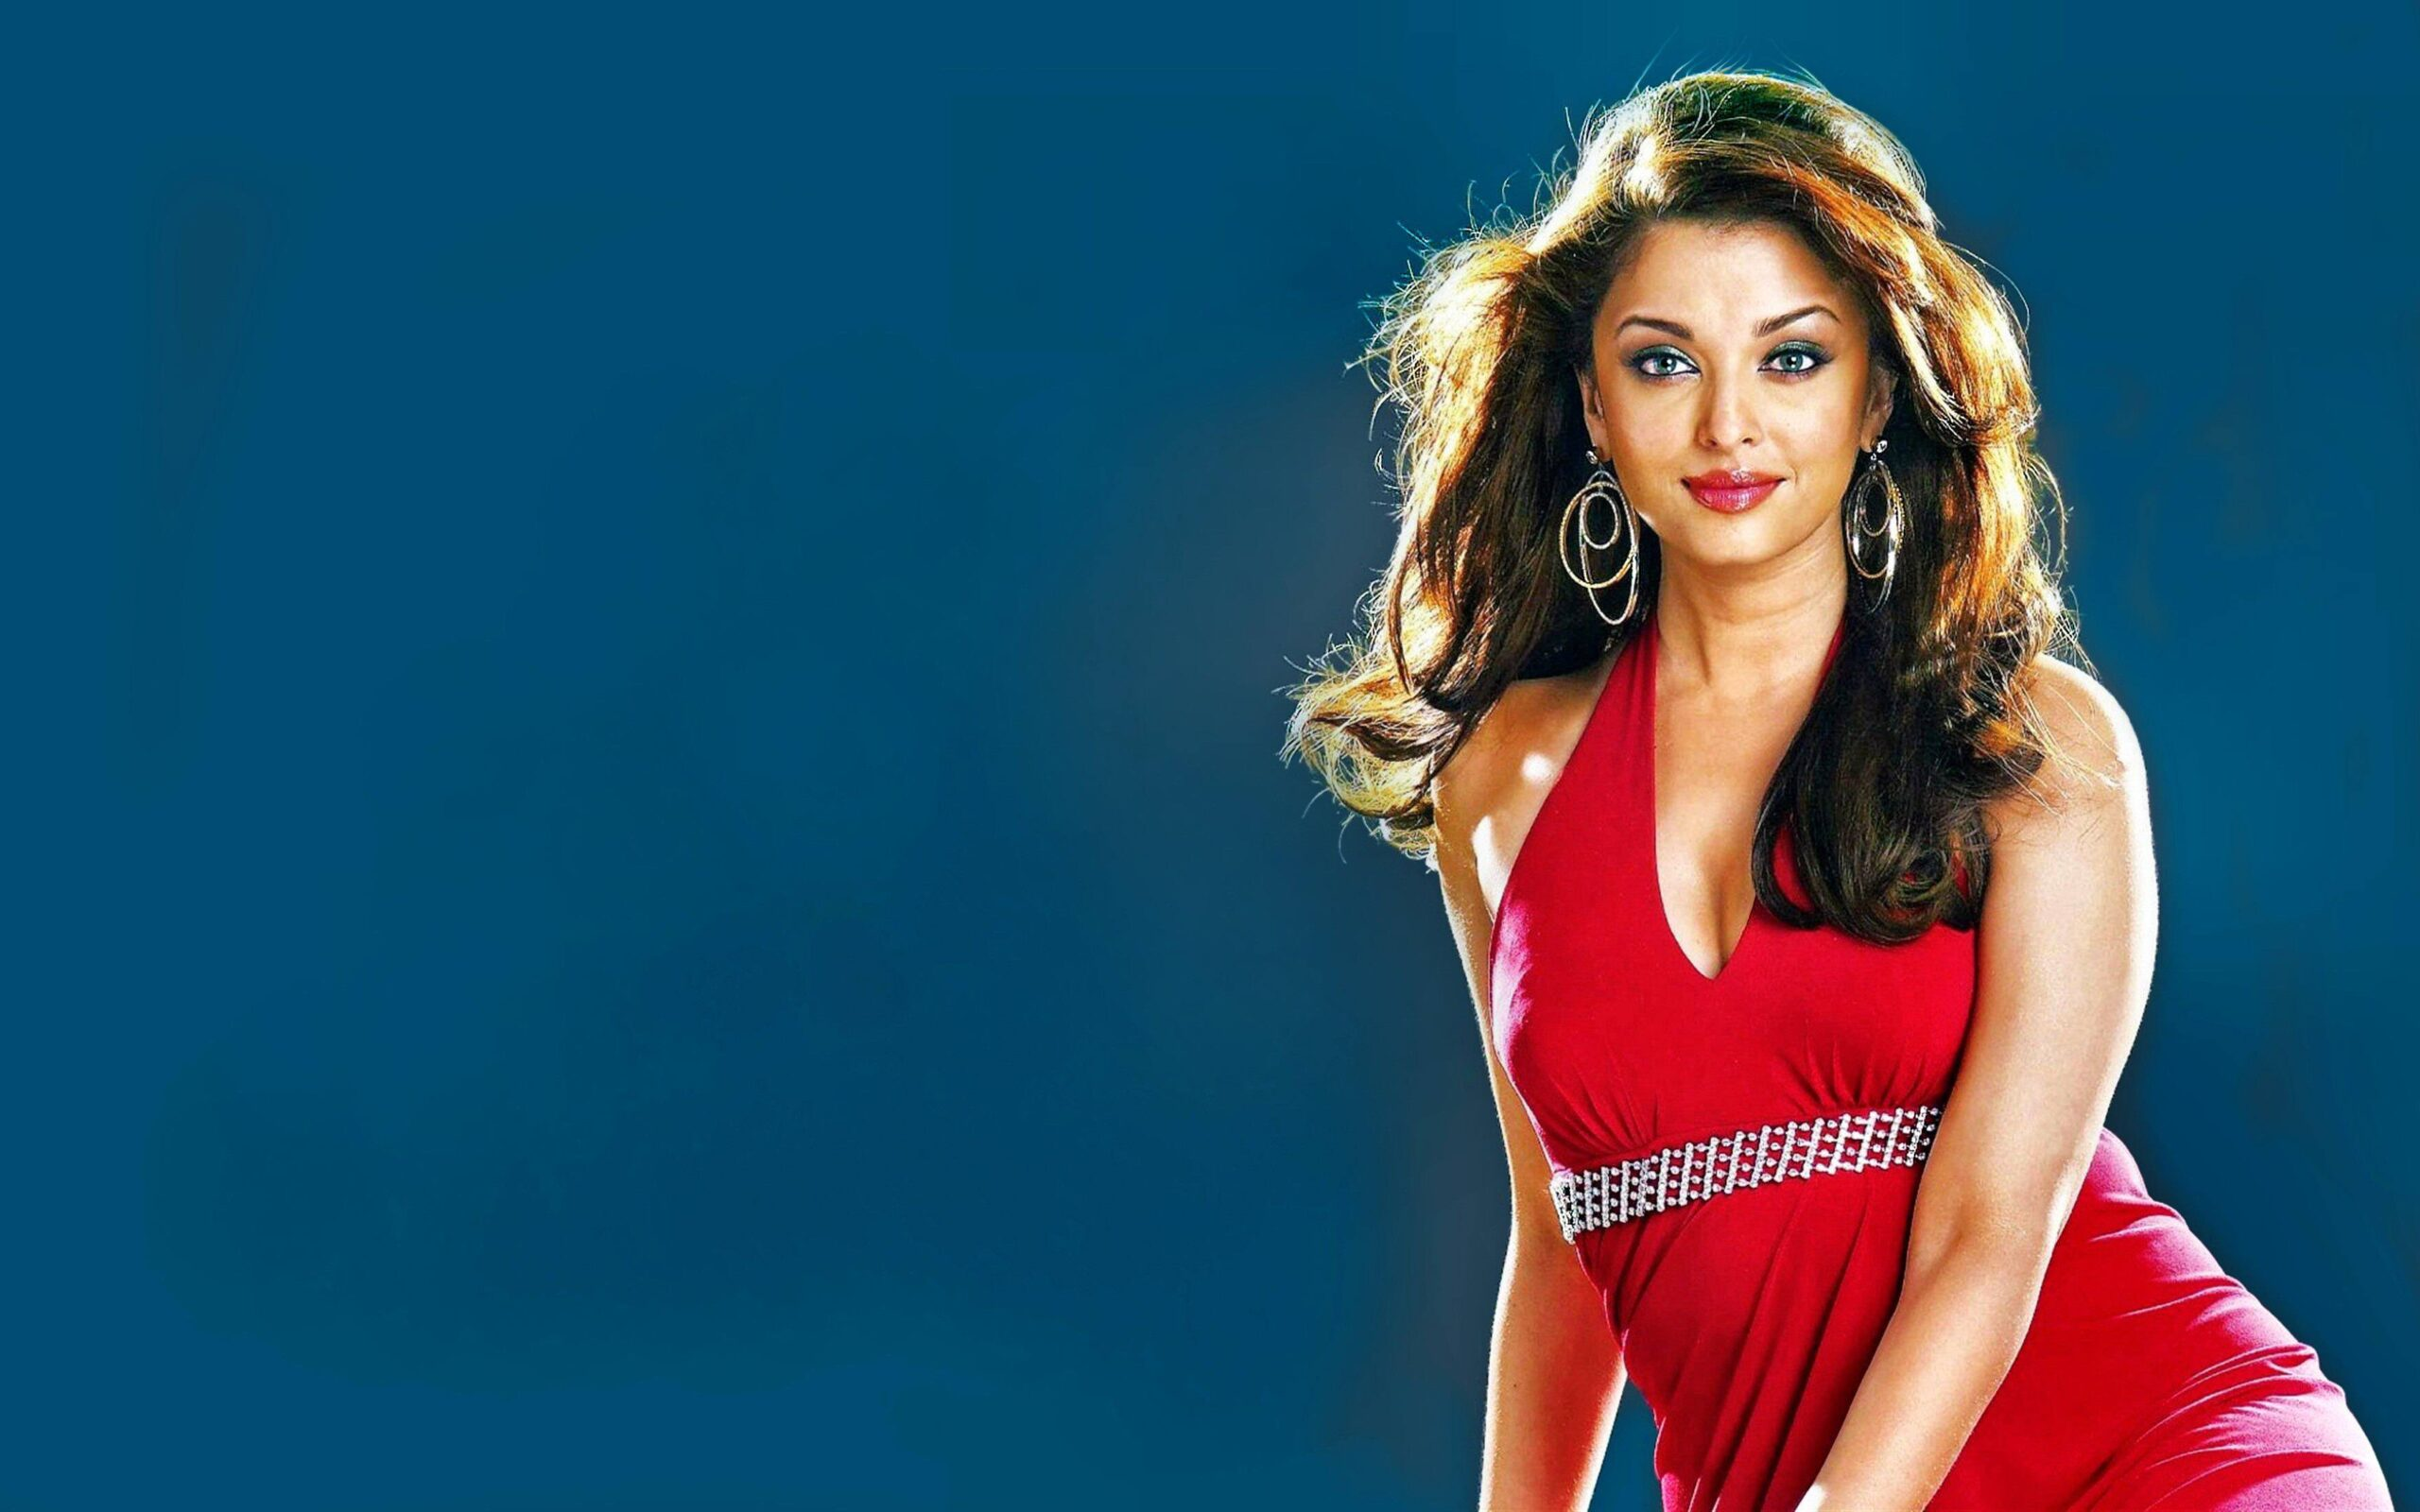 aishwarya_rai-wallpaper_2147483659